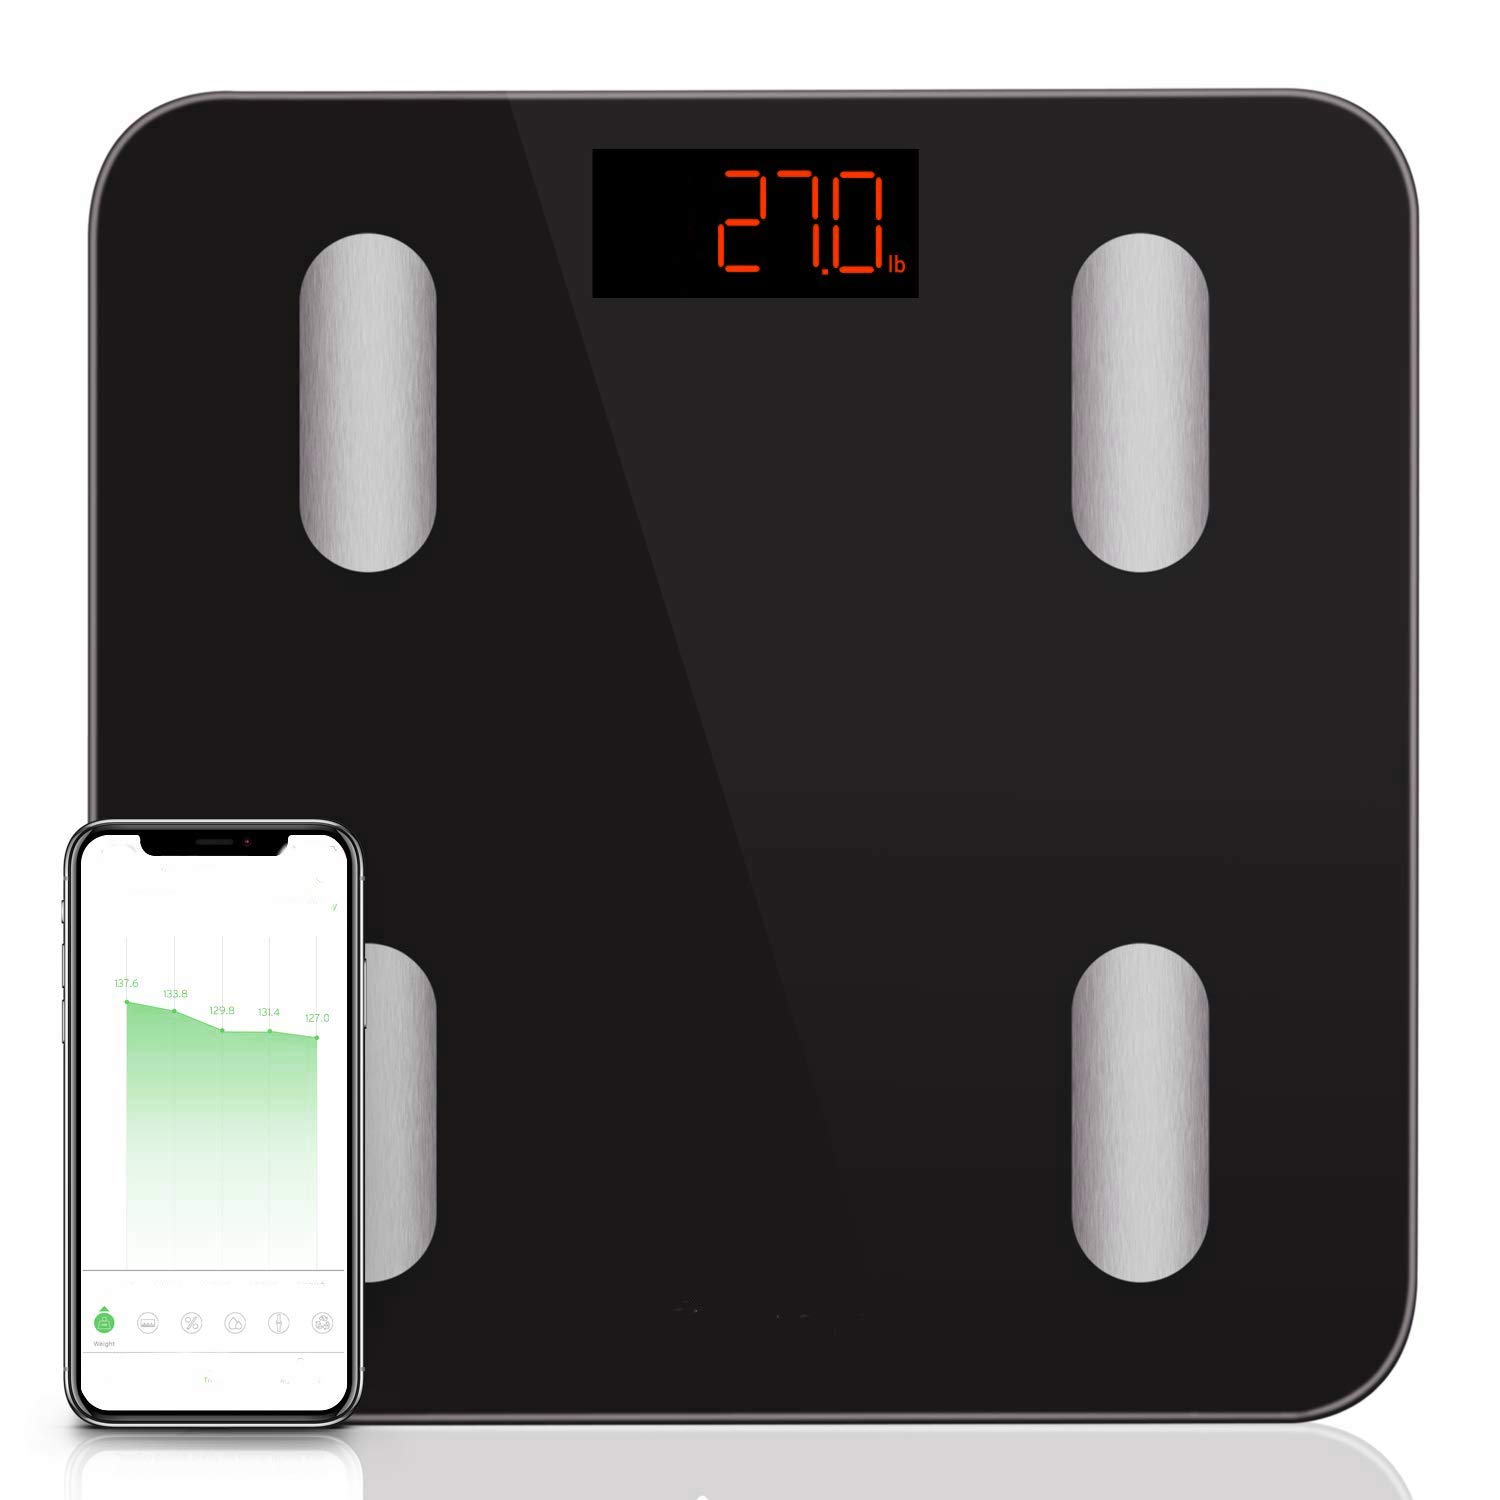 AMGS Body Composition Scales Smart Wireless Bluetooth Accurate Home Bathroom Scale Weight Analyzer Fat Monitor Muscle Bone Mass Metabolic Age Battery Operated LED 400lb & e-Book by Amglobalsupplies